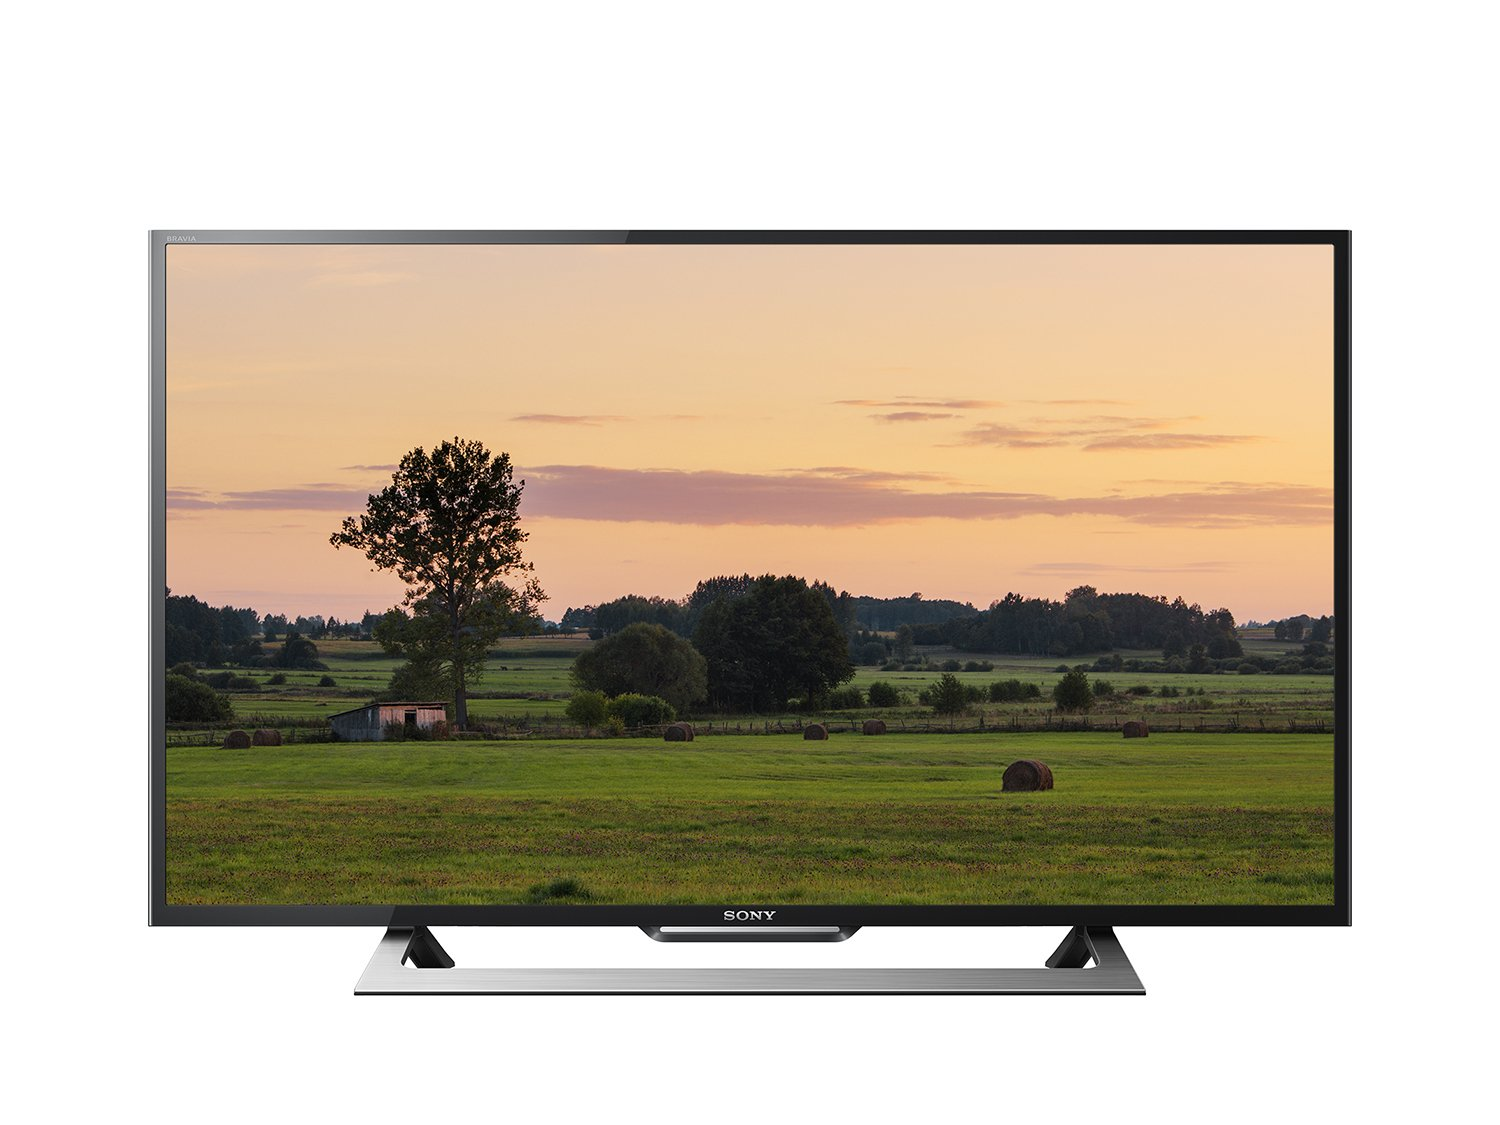 Sony 101.6 cm (40 inches) BRAVIA KLV-40W562D Full HD Smart LED TV By Amazon @ Rs.49,490